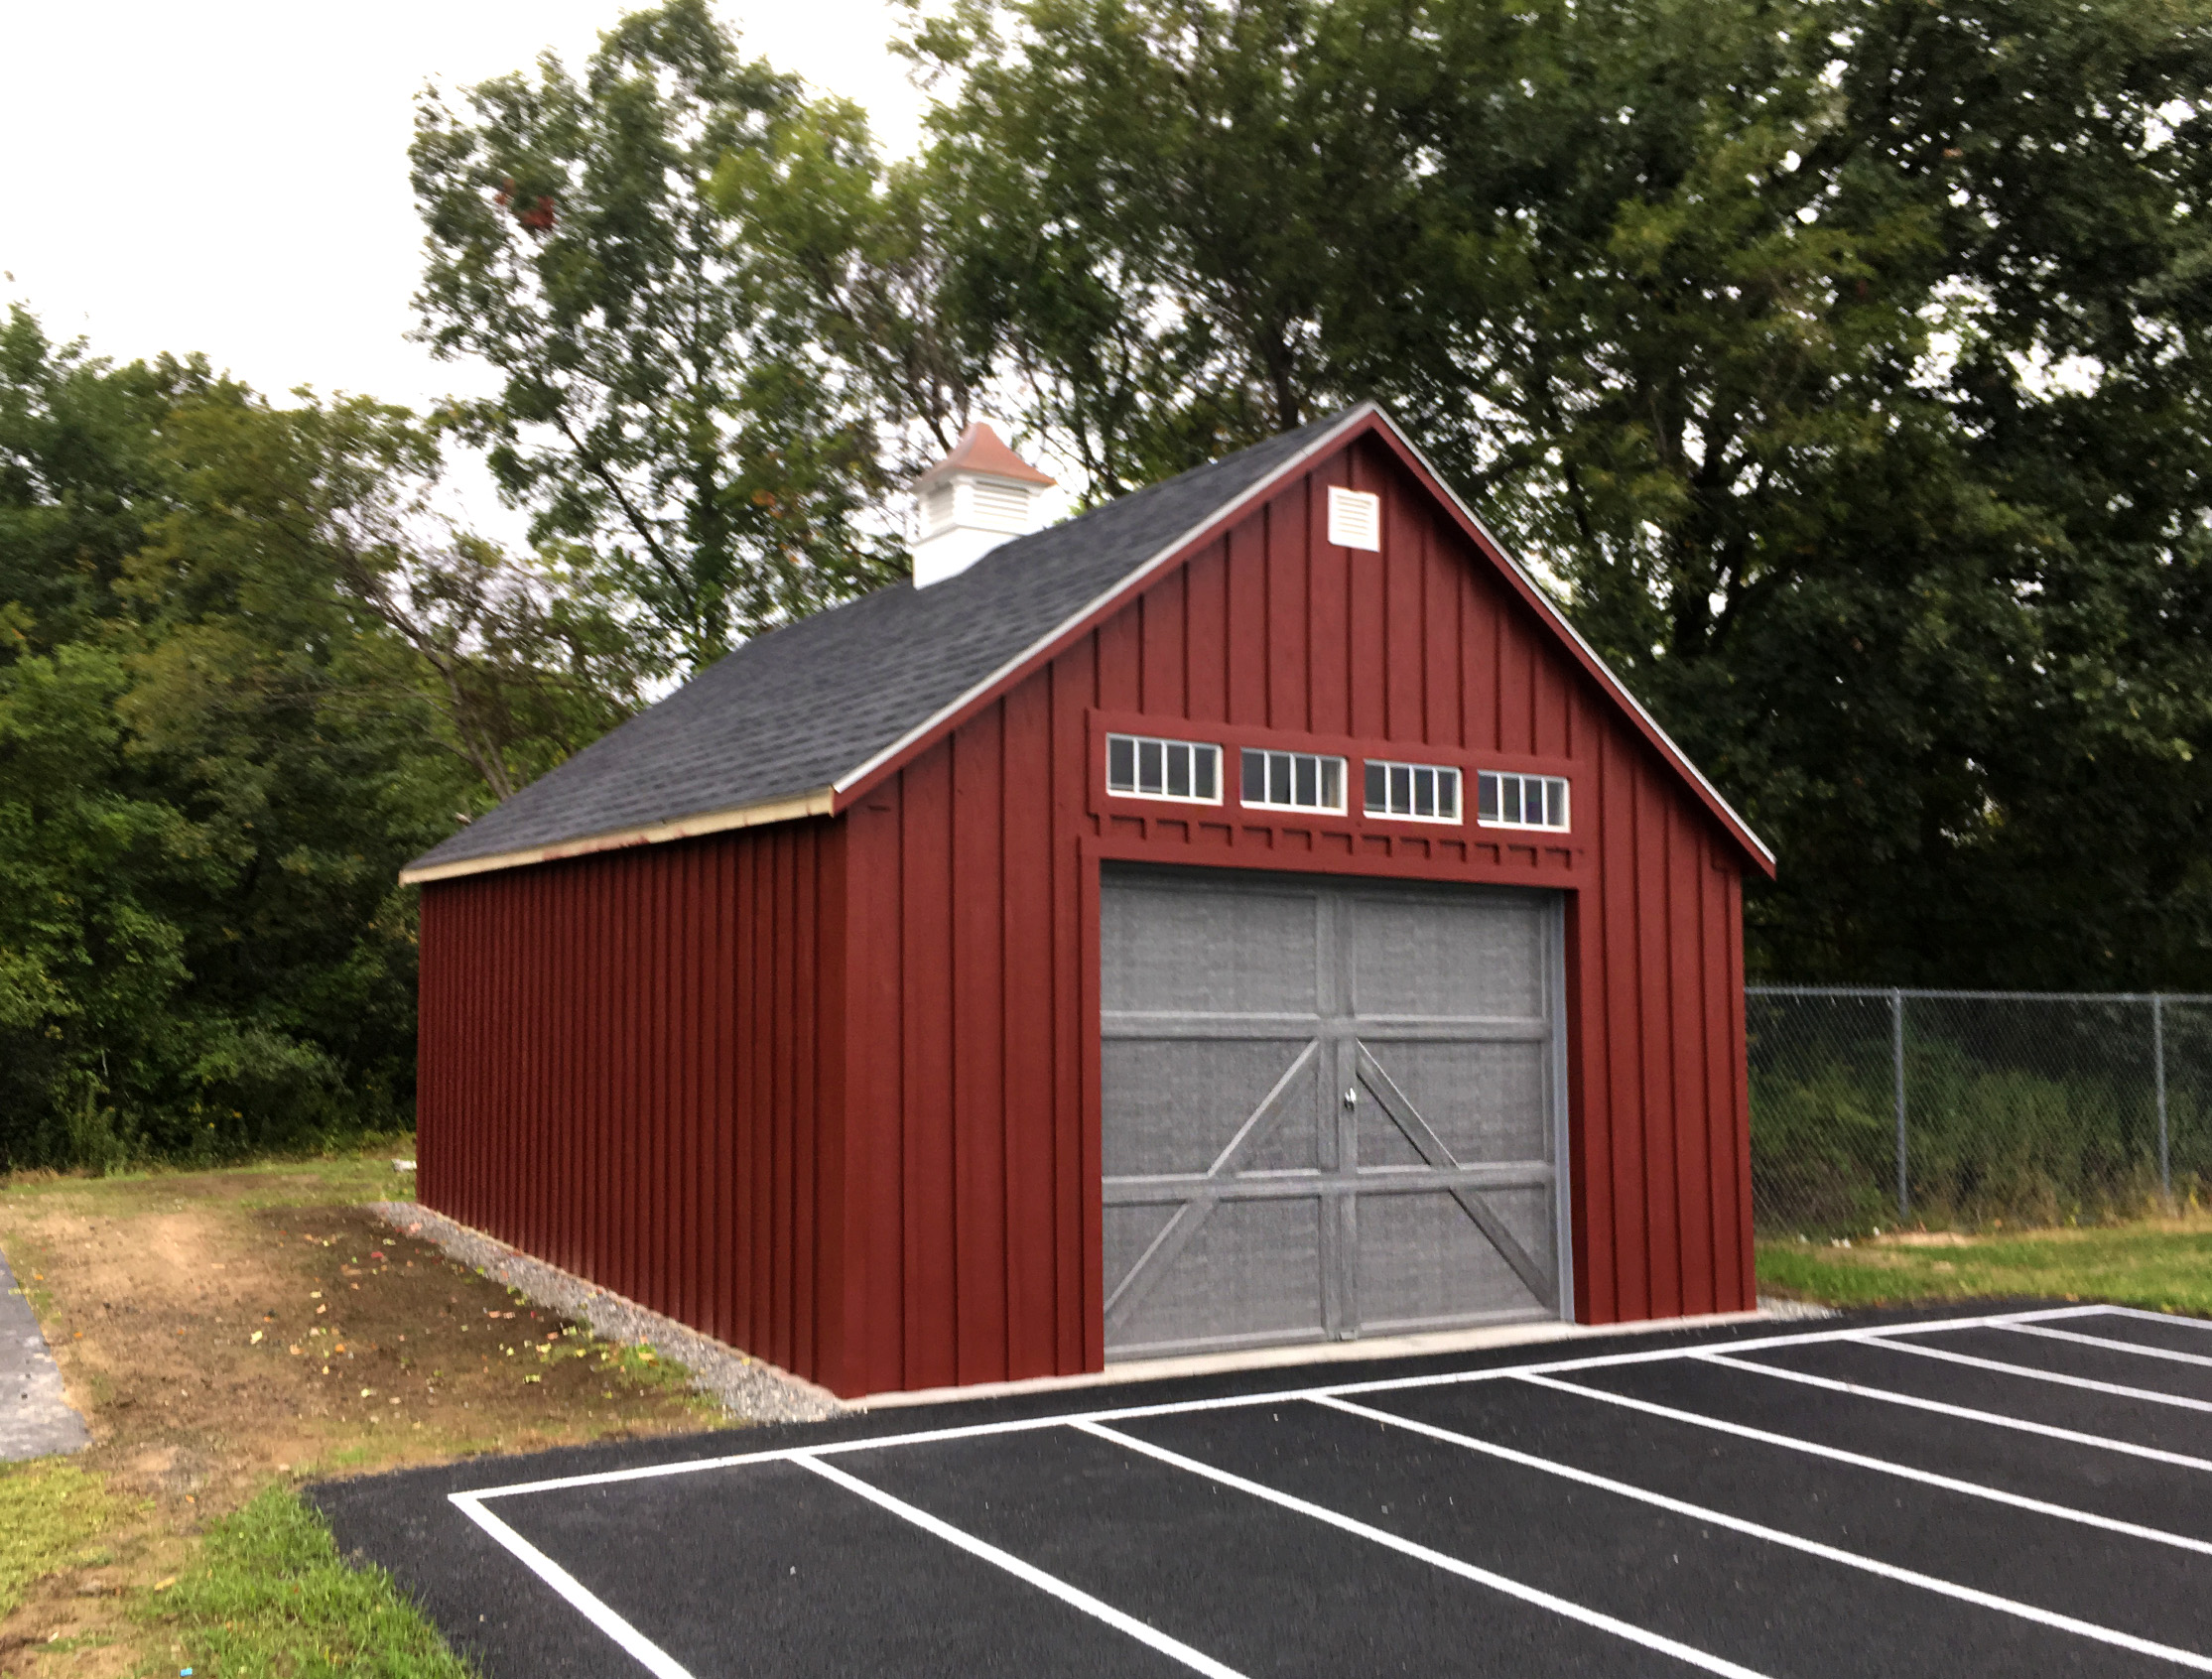 Outbuilding at Jack Welch Stadium, Ipswich High School, Massachusetts